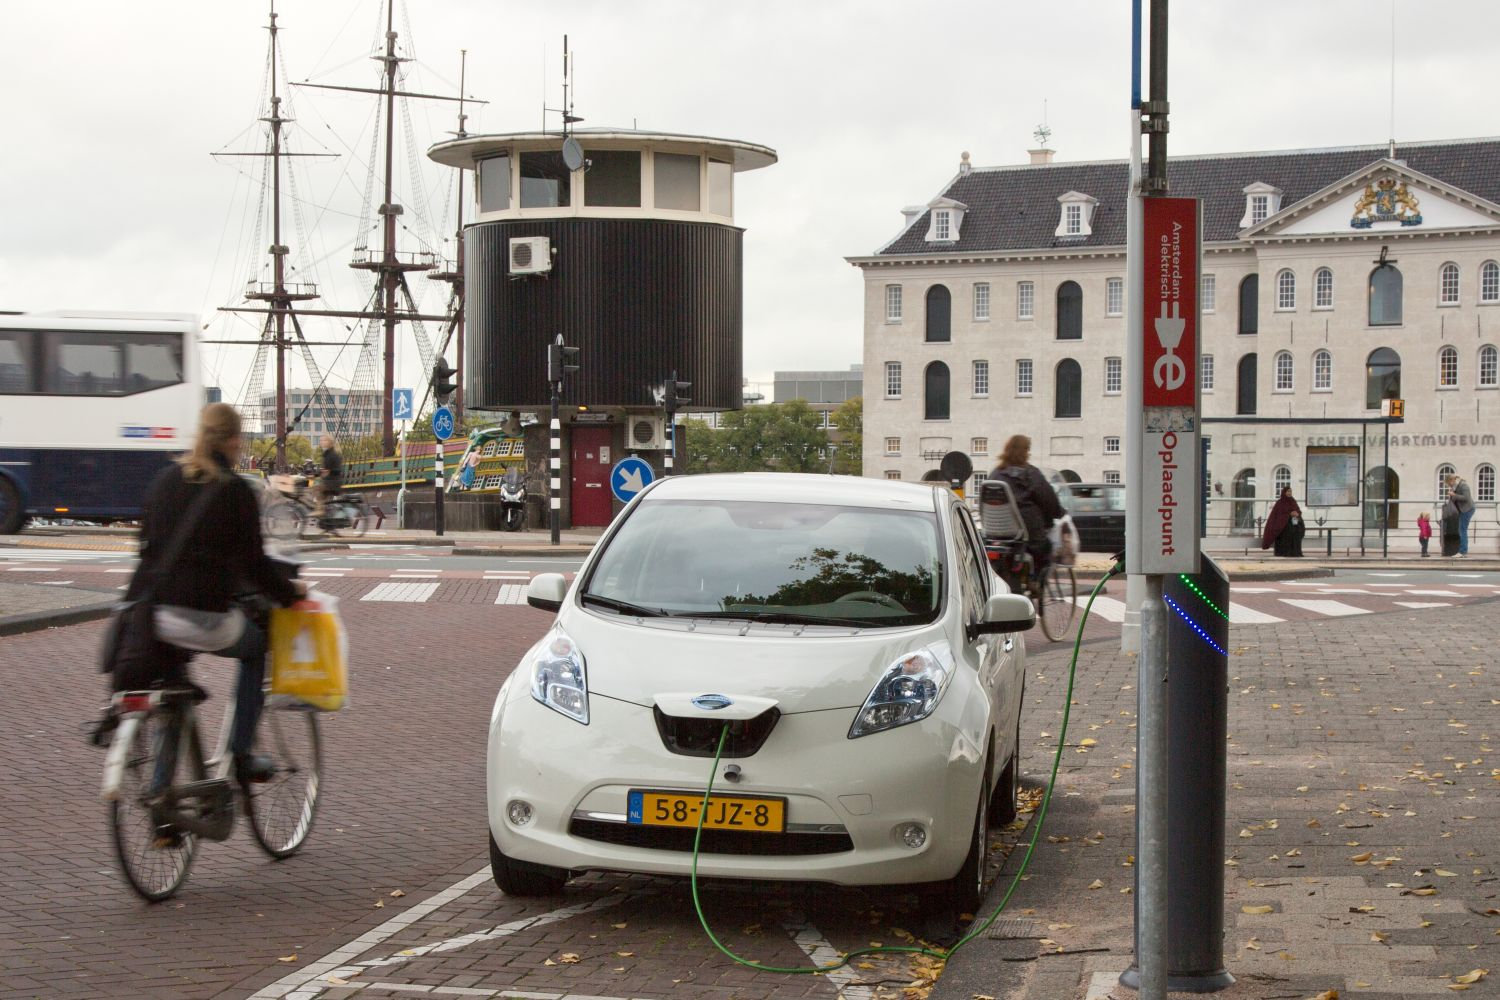 The Netherlands, California to sign $21M electric vehicle & smart mobility agreement